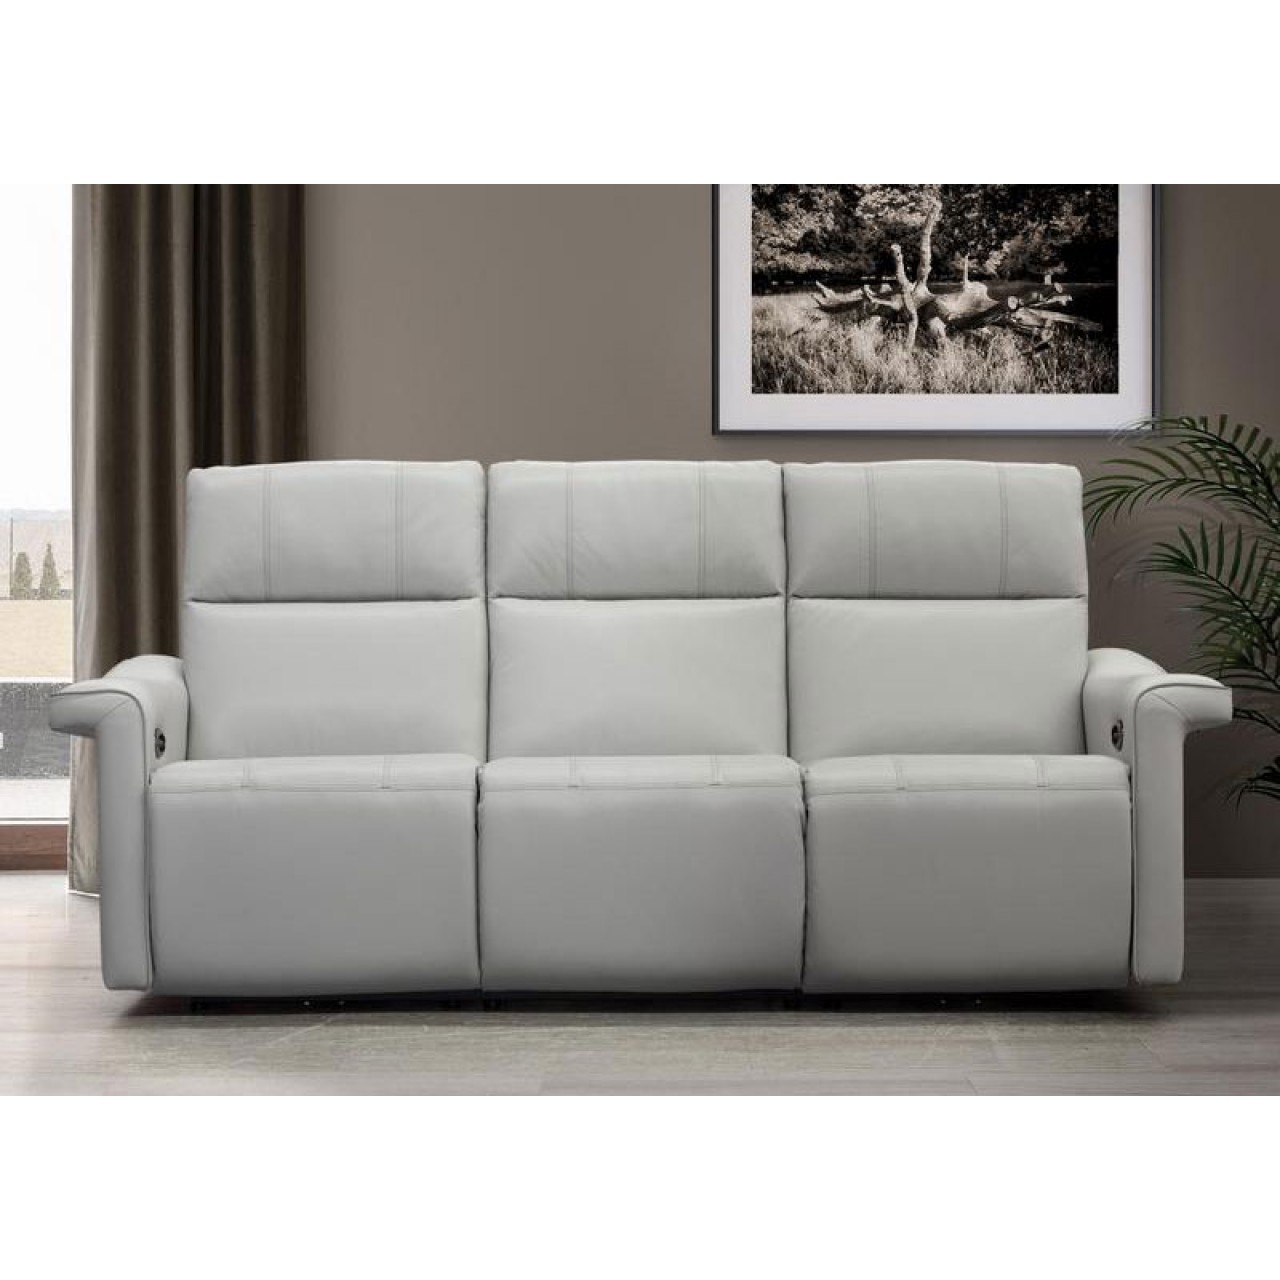 Economax Sectional Sofas In Latest Elran Sofa (Gallery 6 of 15)